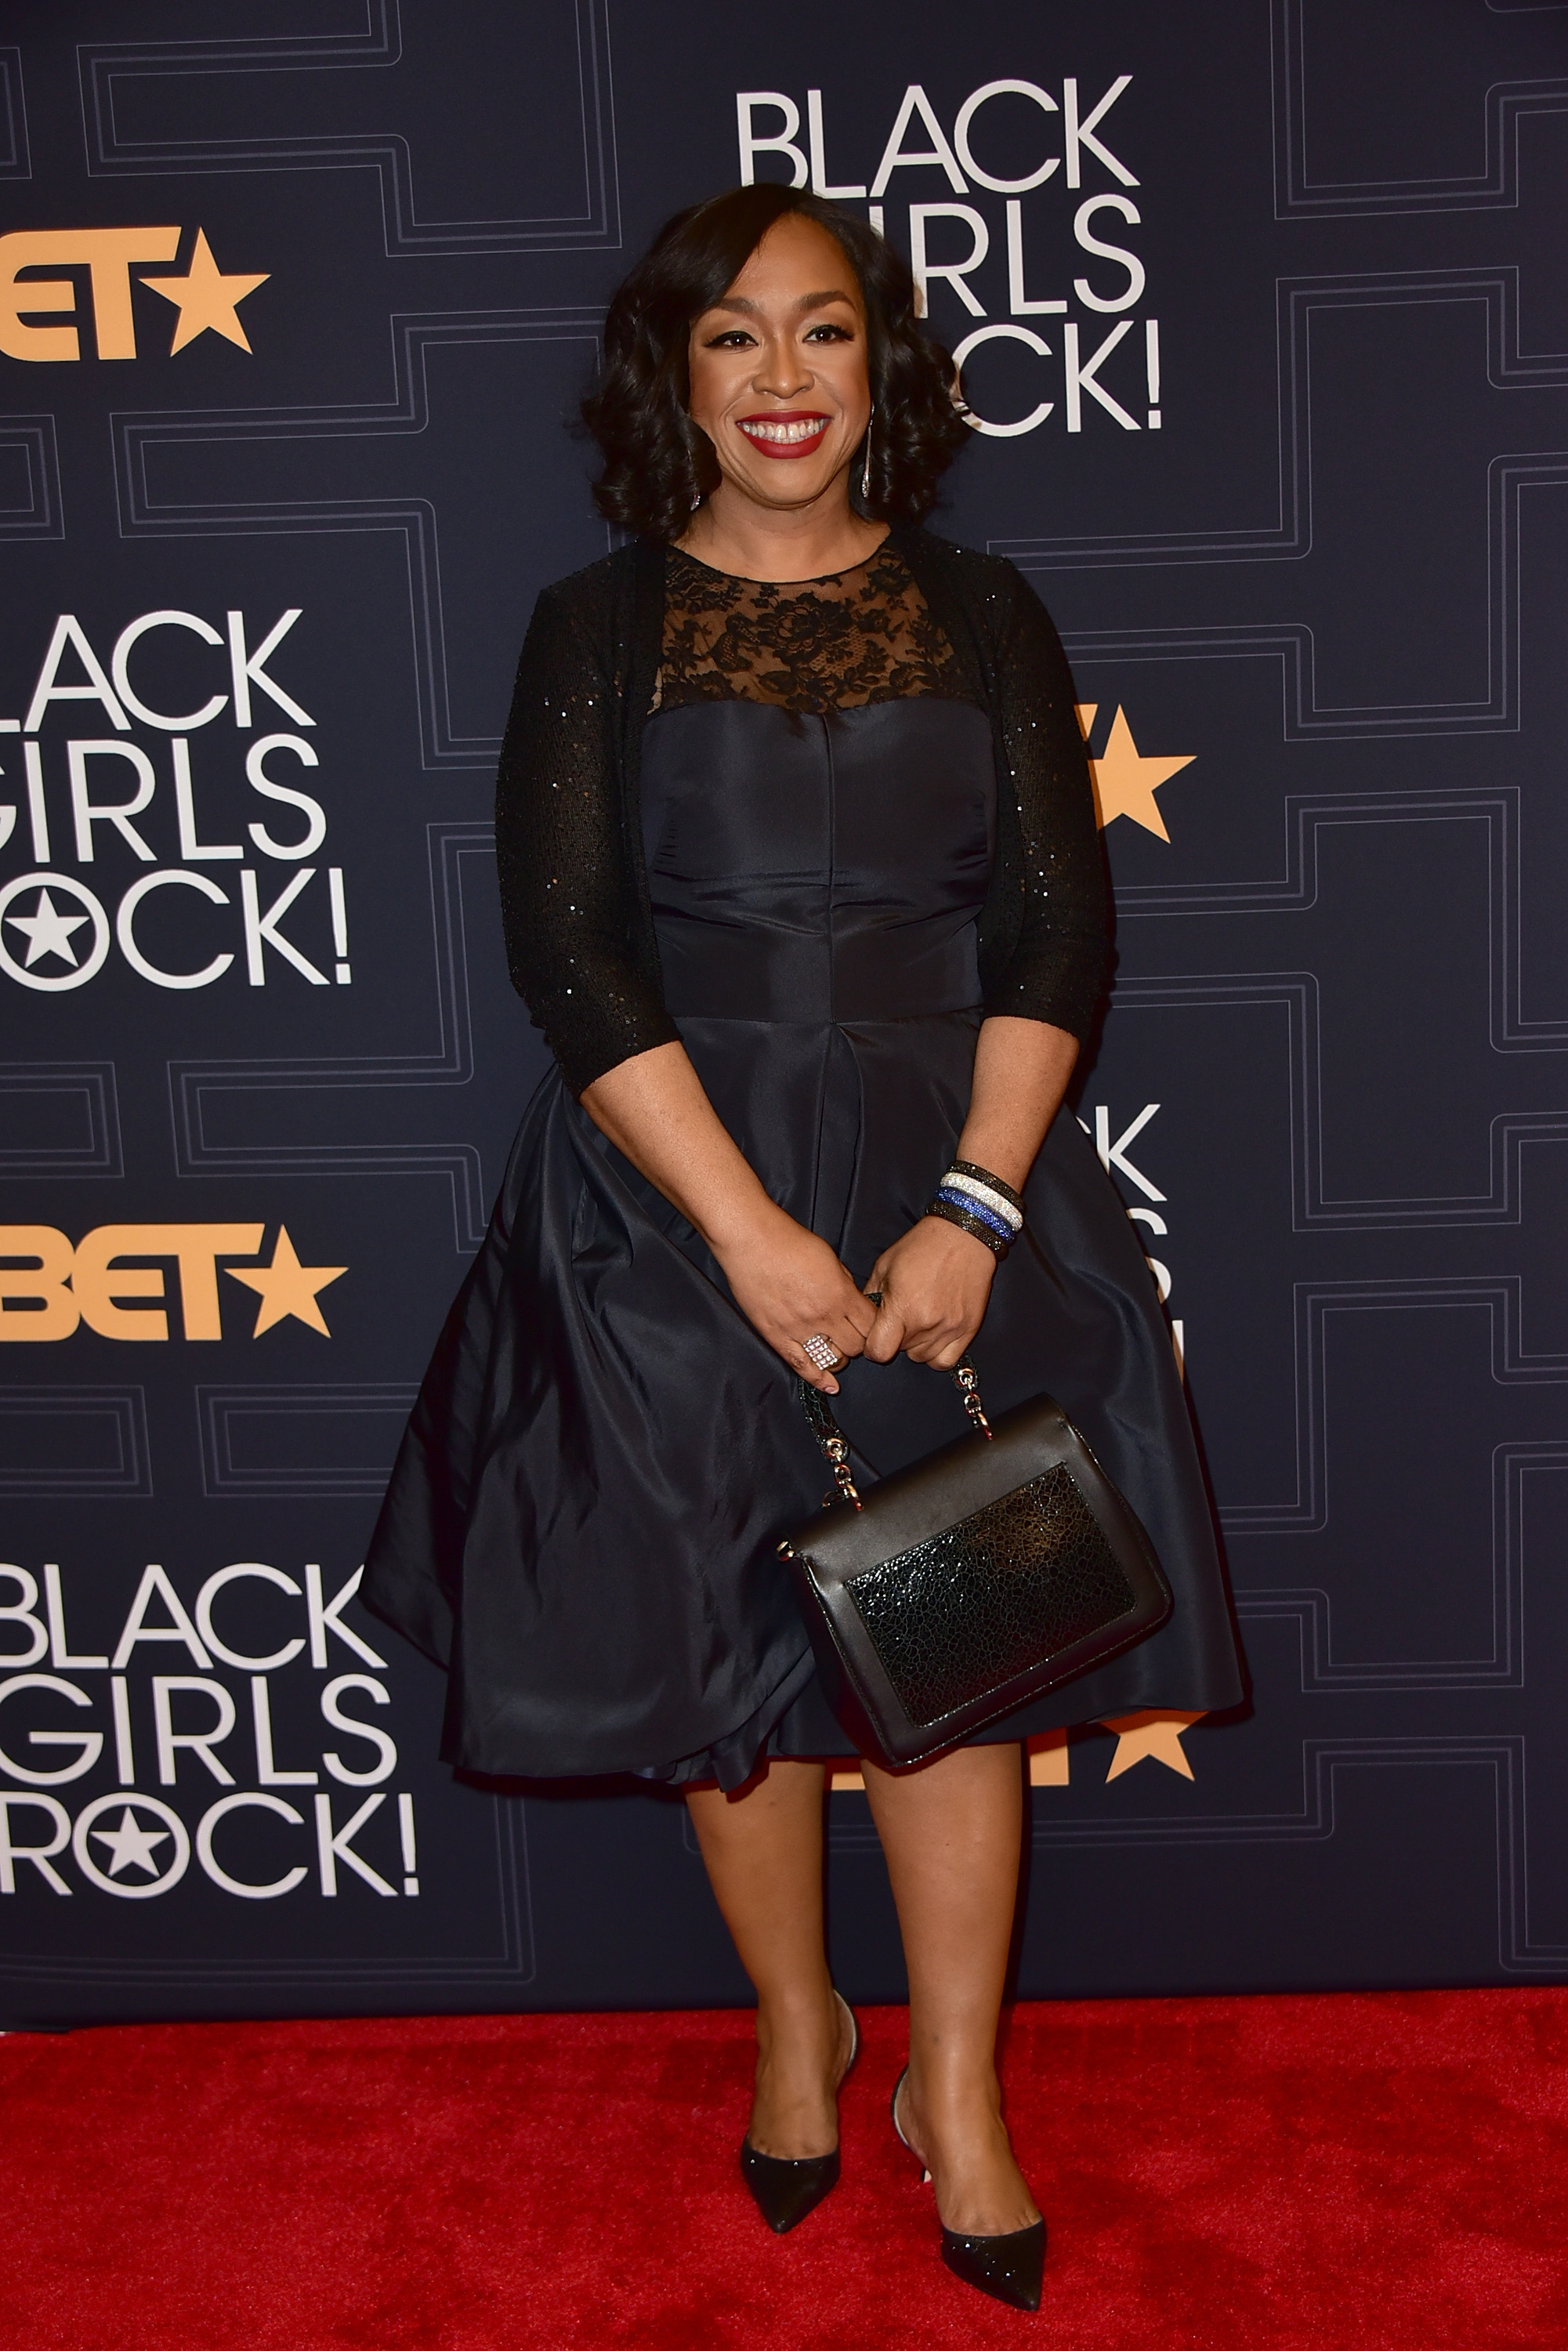 Shonda Rhimes attends the Black Girls Rock! 2016 Show at New Jersey Performing Arts Center on April 1, 2016 in Newark, New Jersey